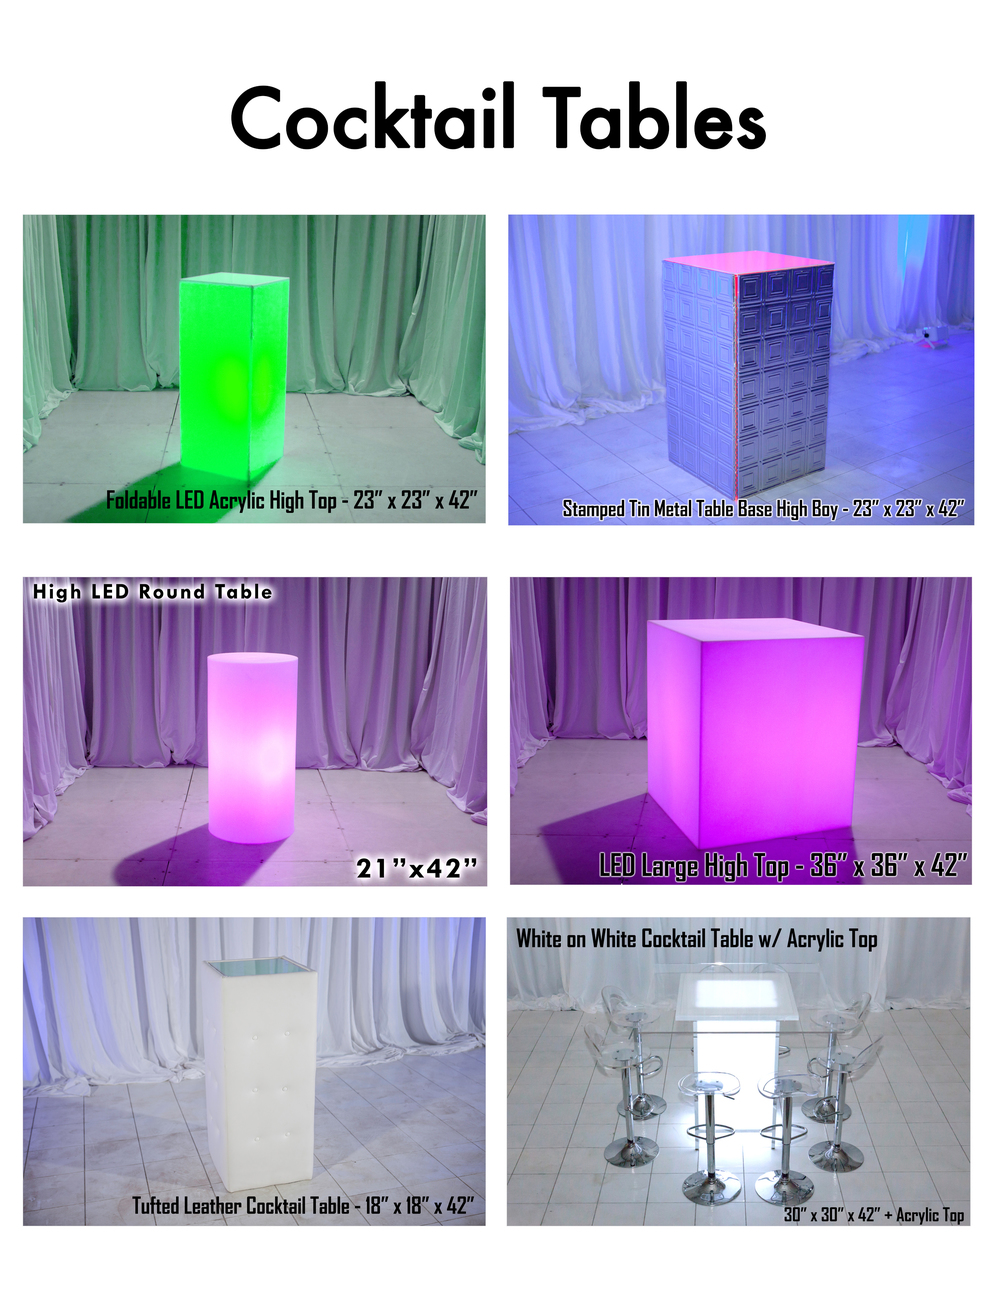 P41_Cocktail Tables.jpg